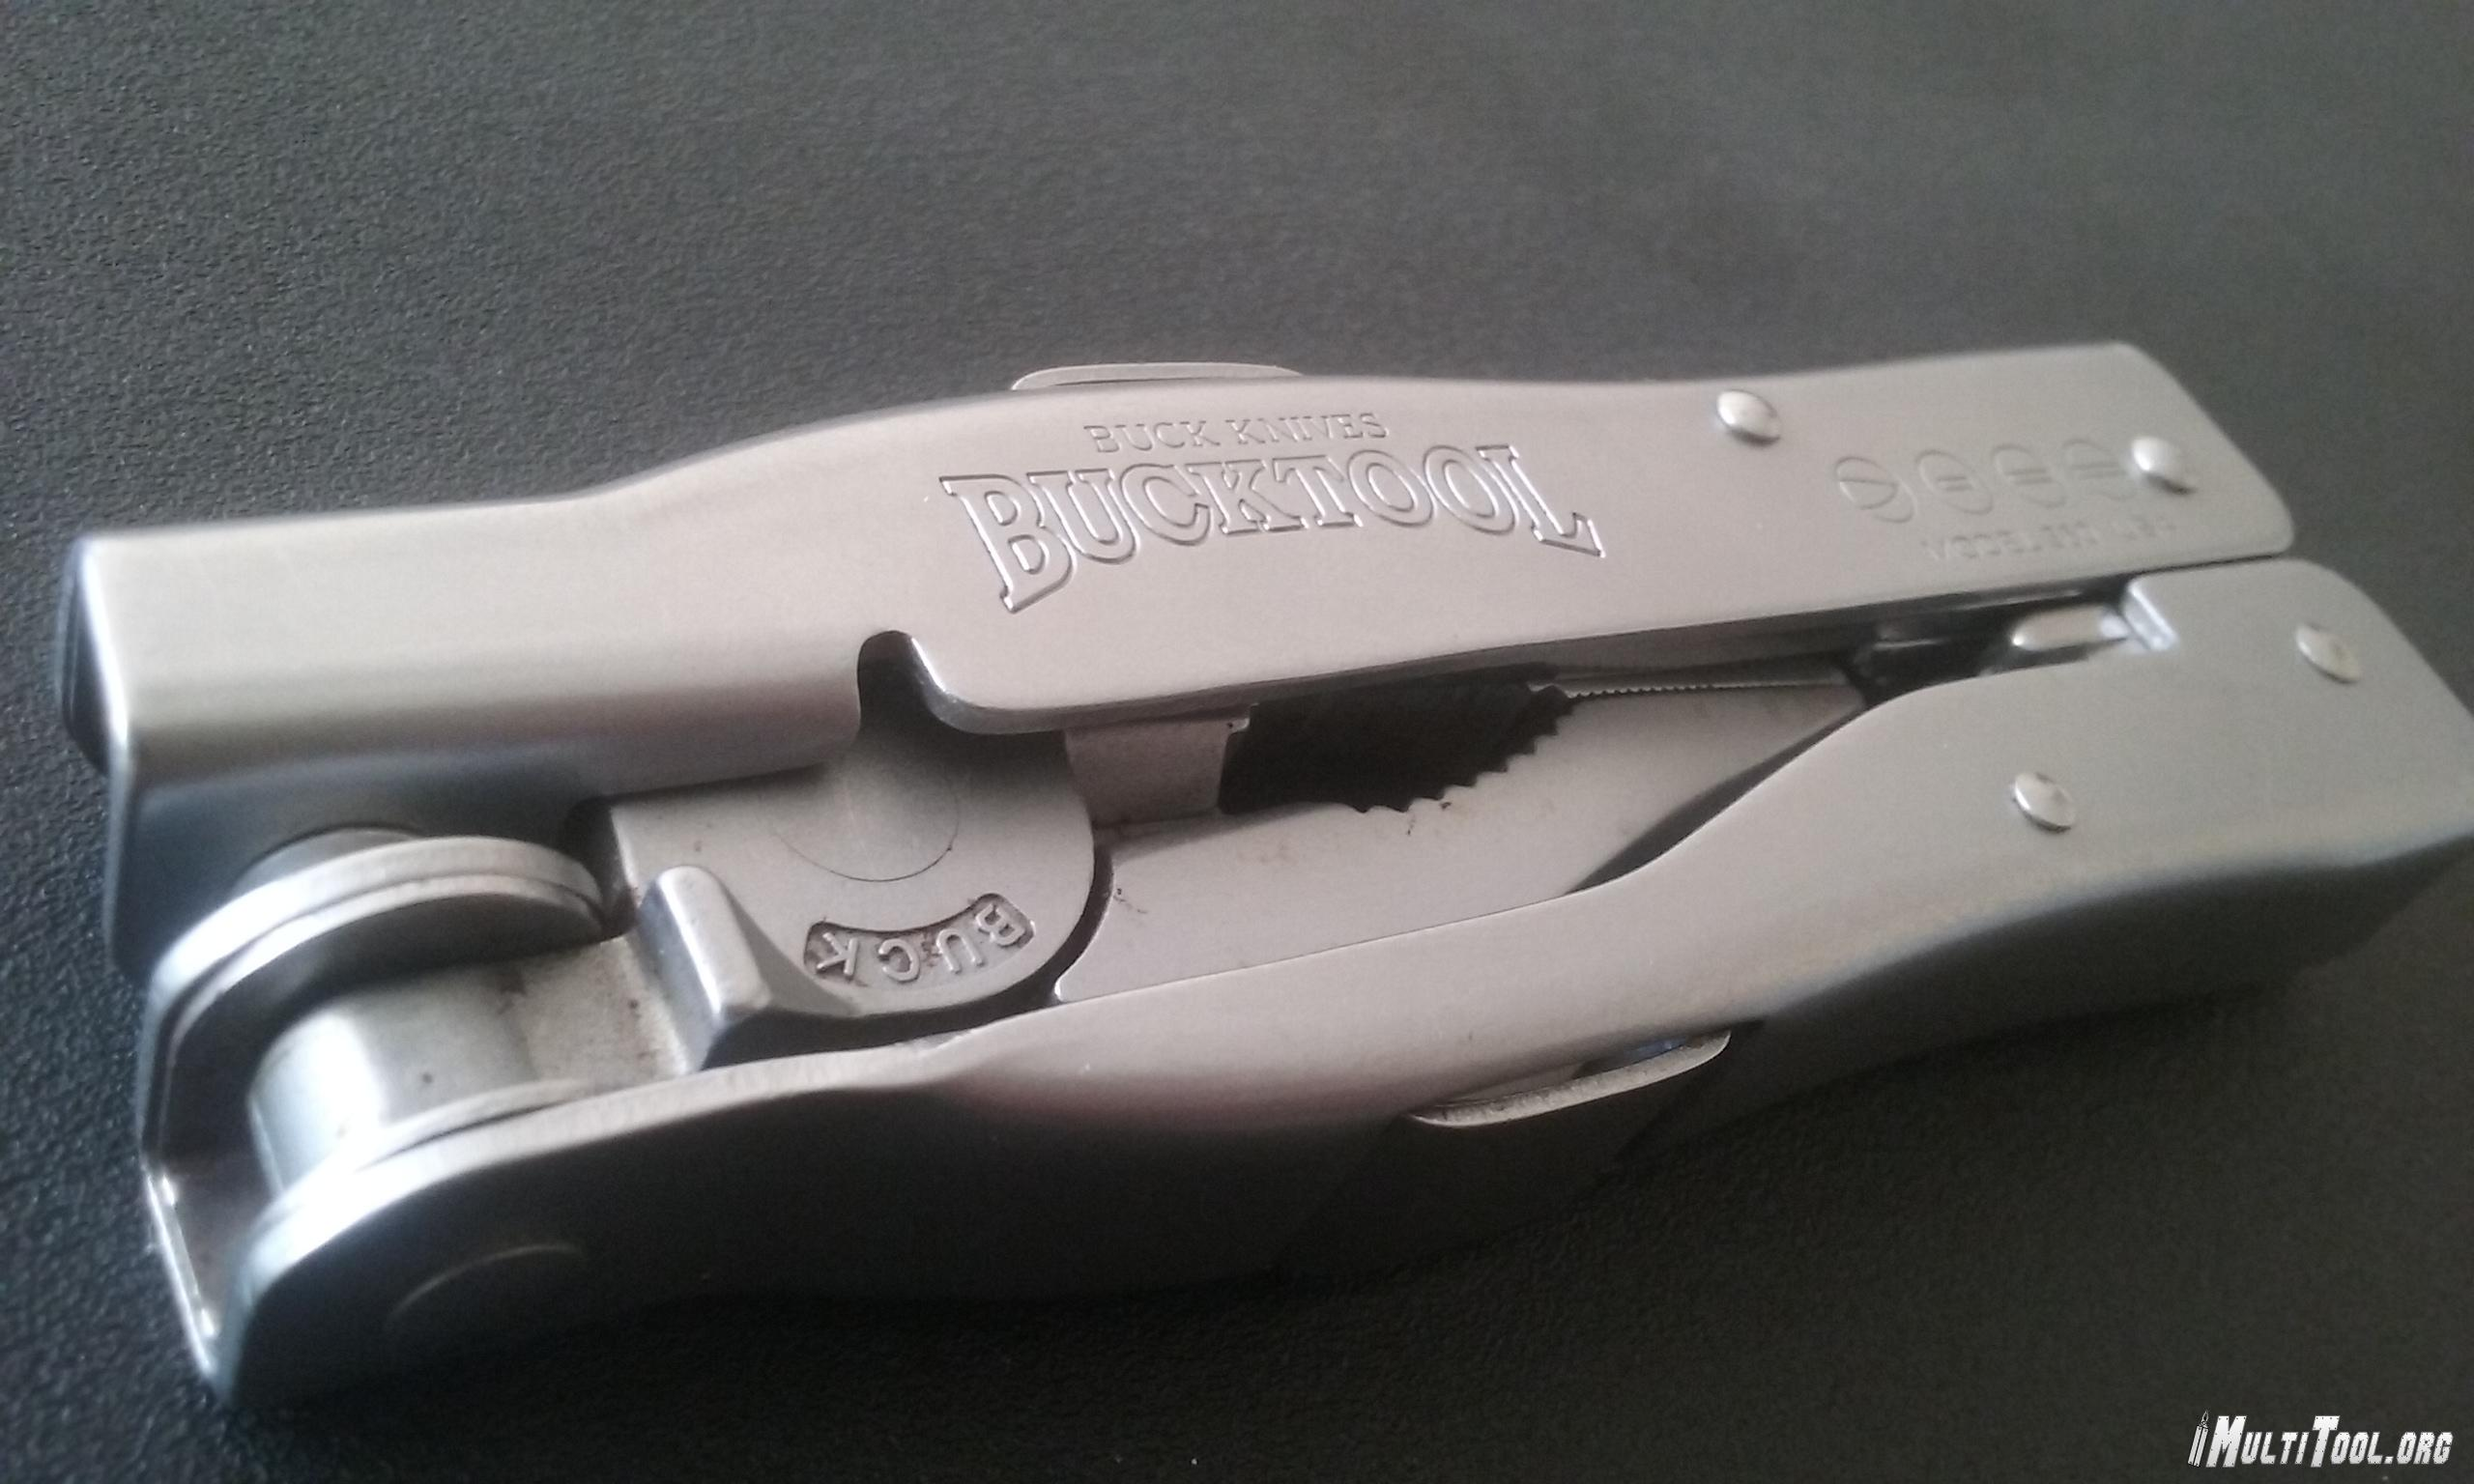 Buck BuckTool 360 review